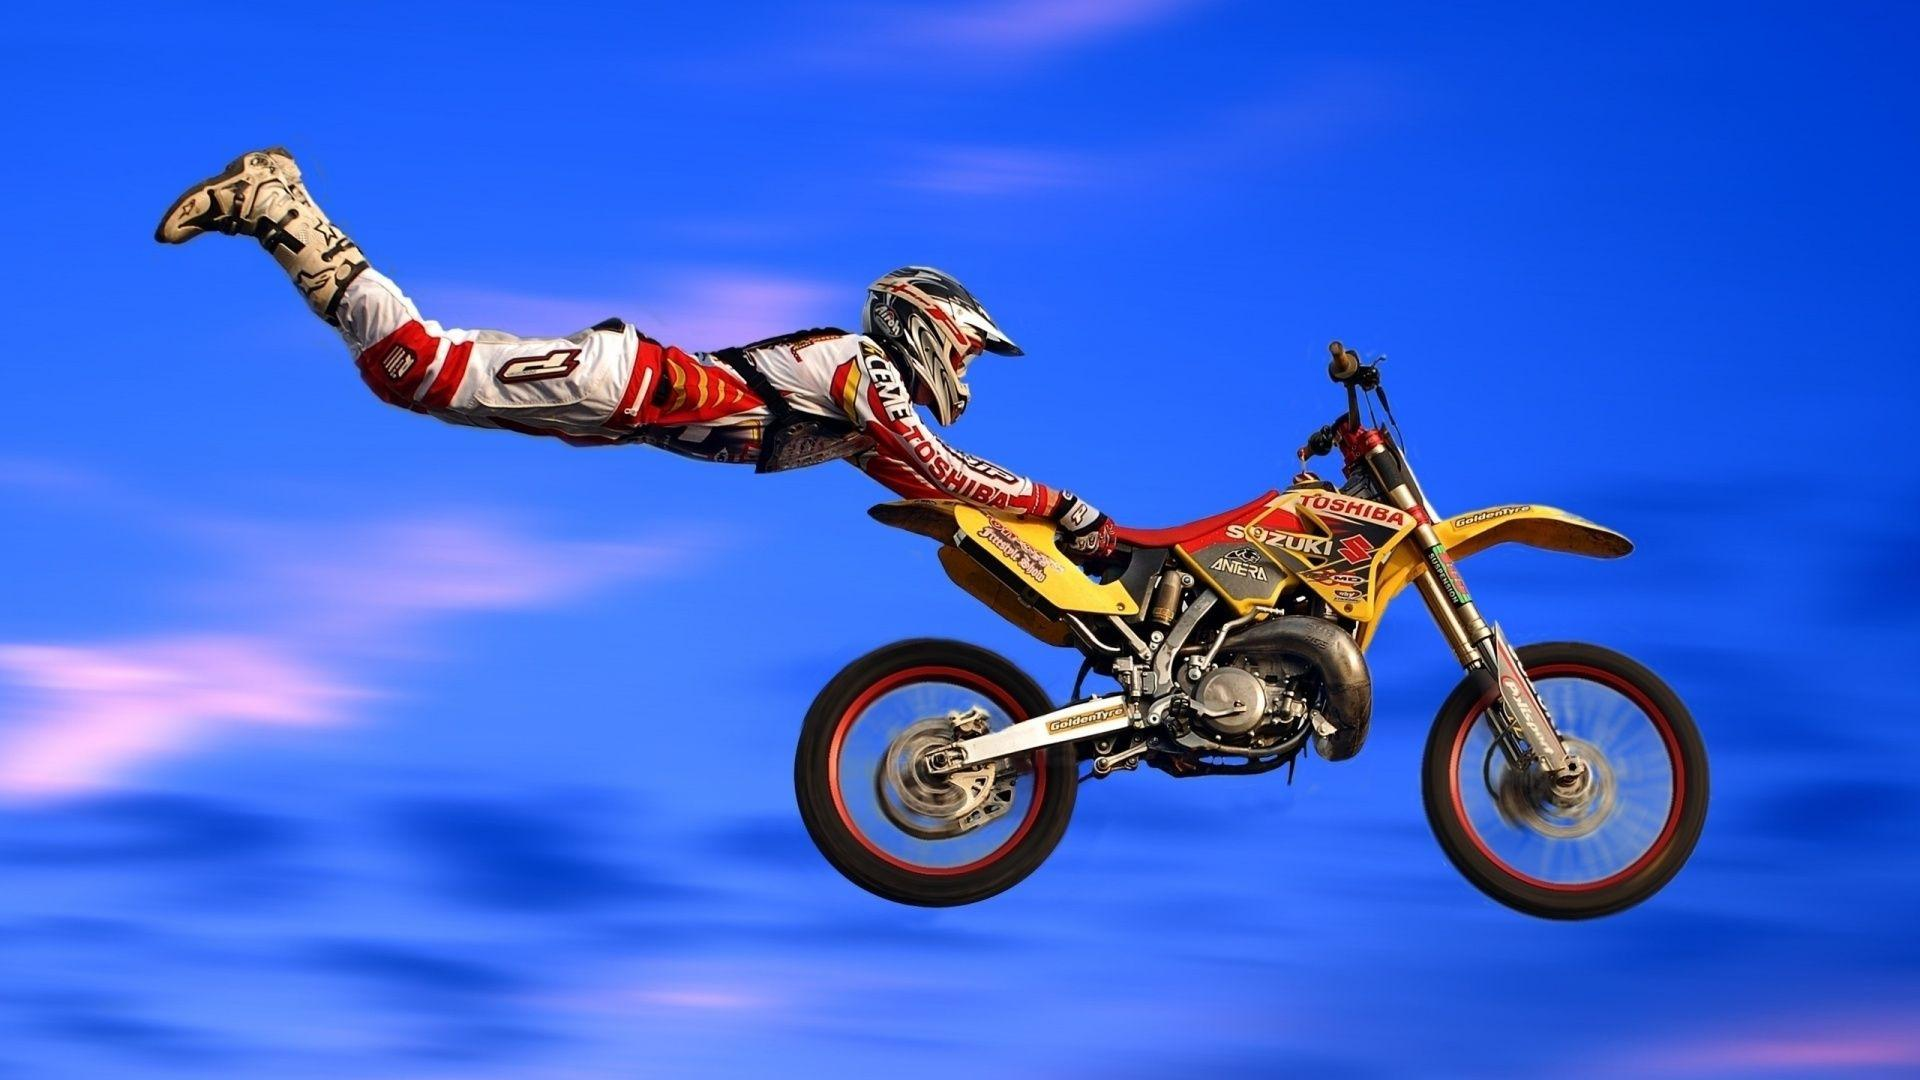 Honda Dirt Bike Wallpapers - Top Free Honda Dirt Bike Backgrounds ...